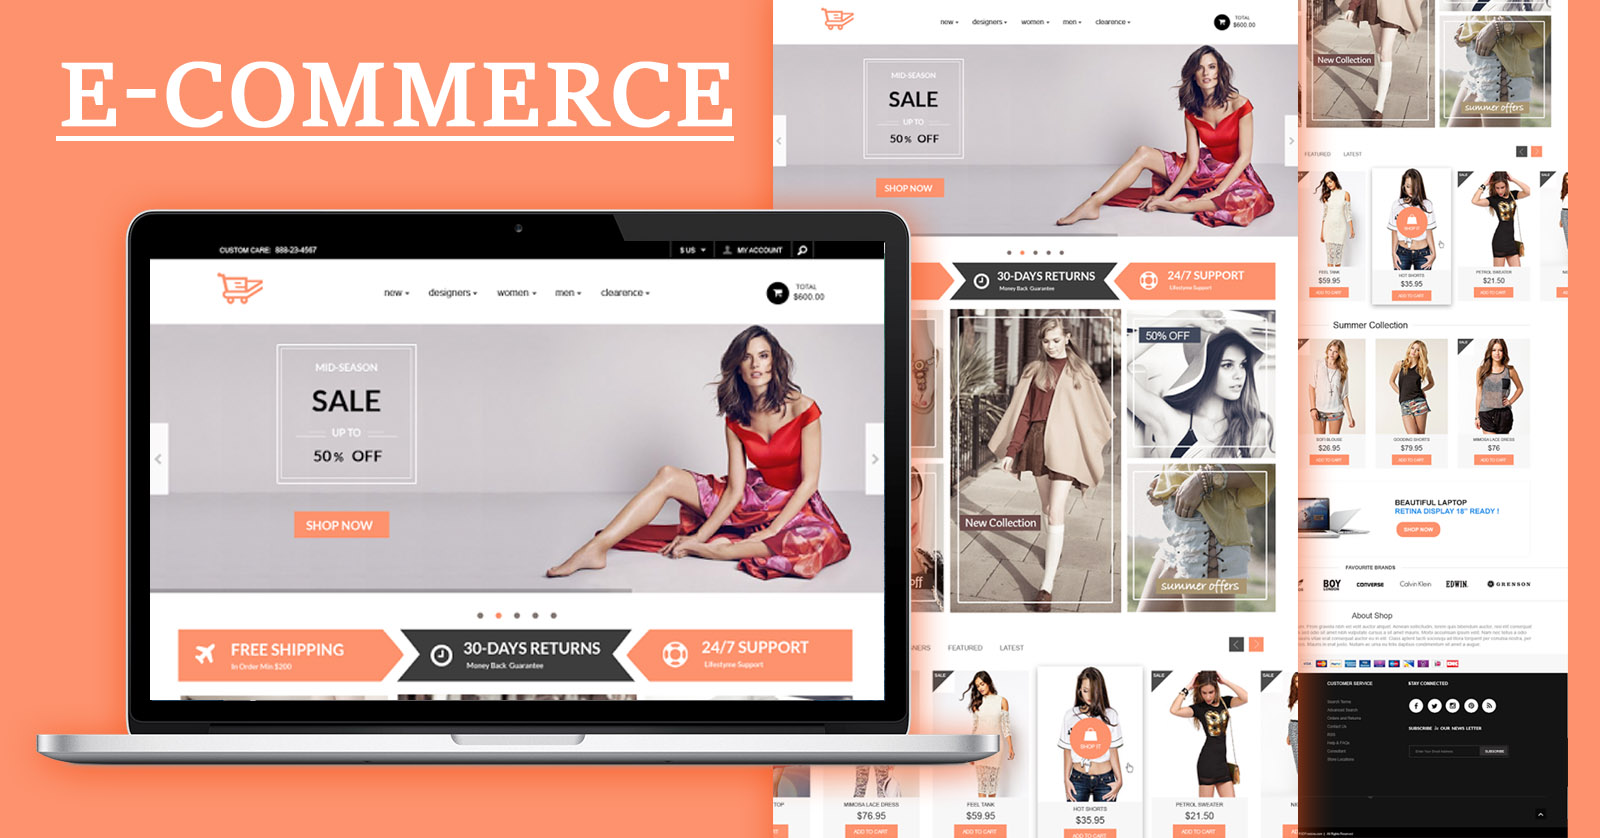 e-Commerce Website Template Design Free Download